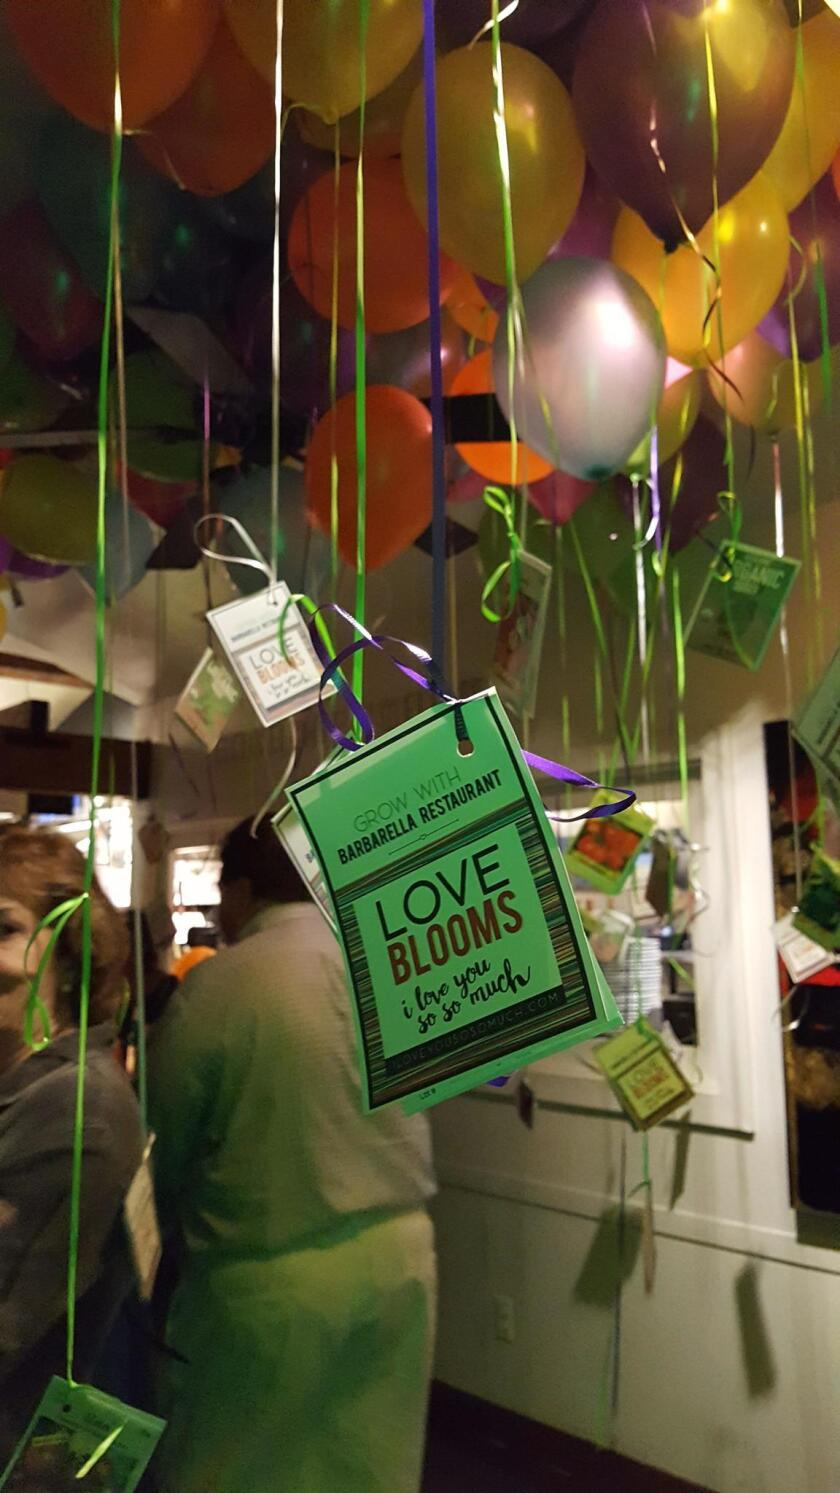 To promote Beltaire's new charity, I Love You So So Much, tags attached to seed packets hang from balloons.